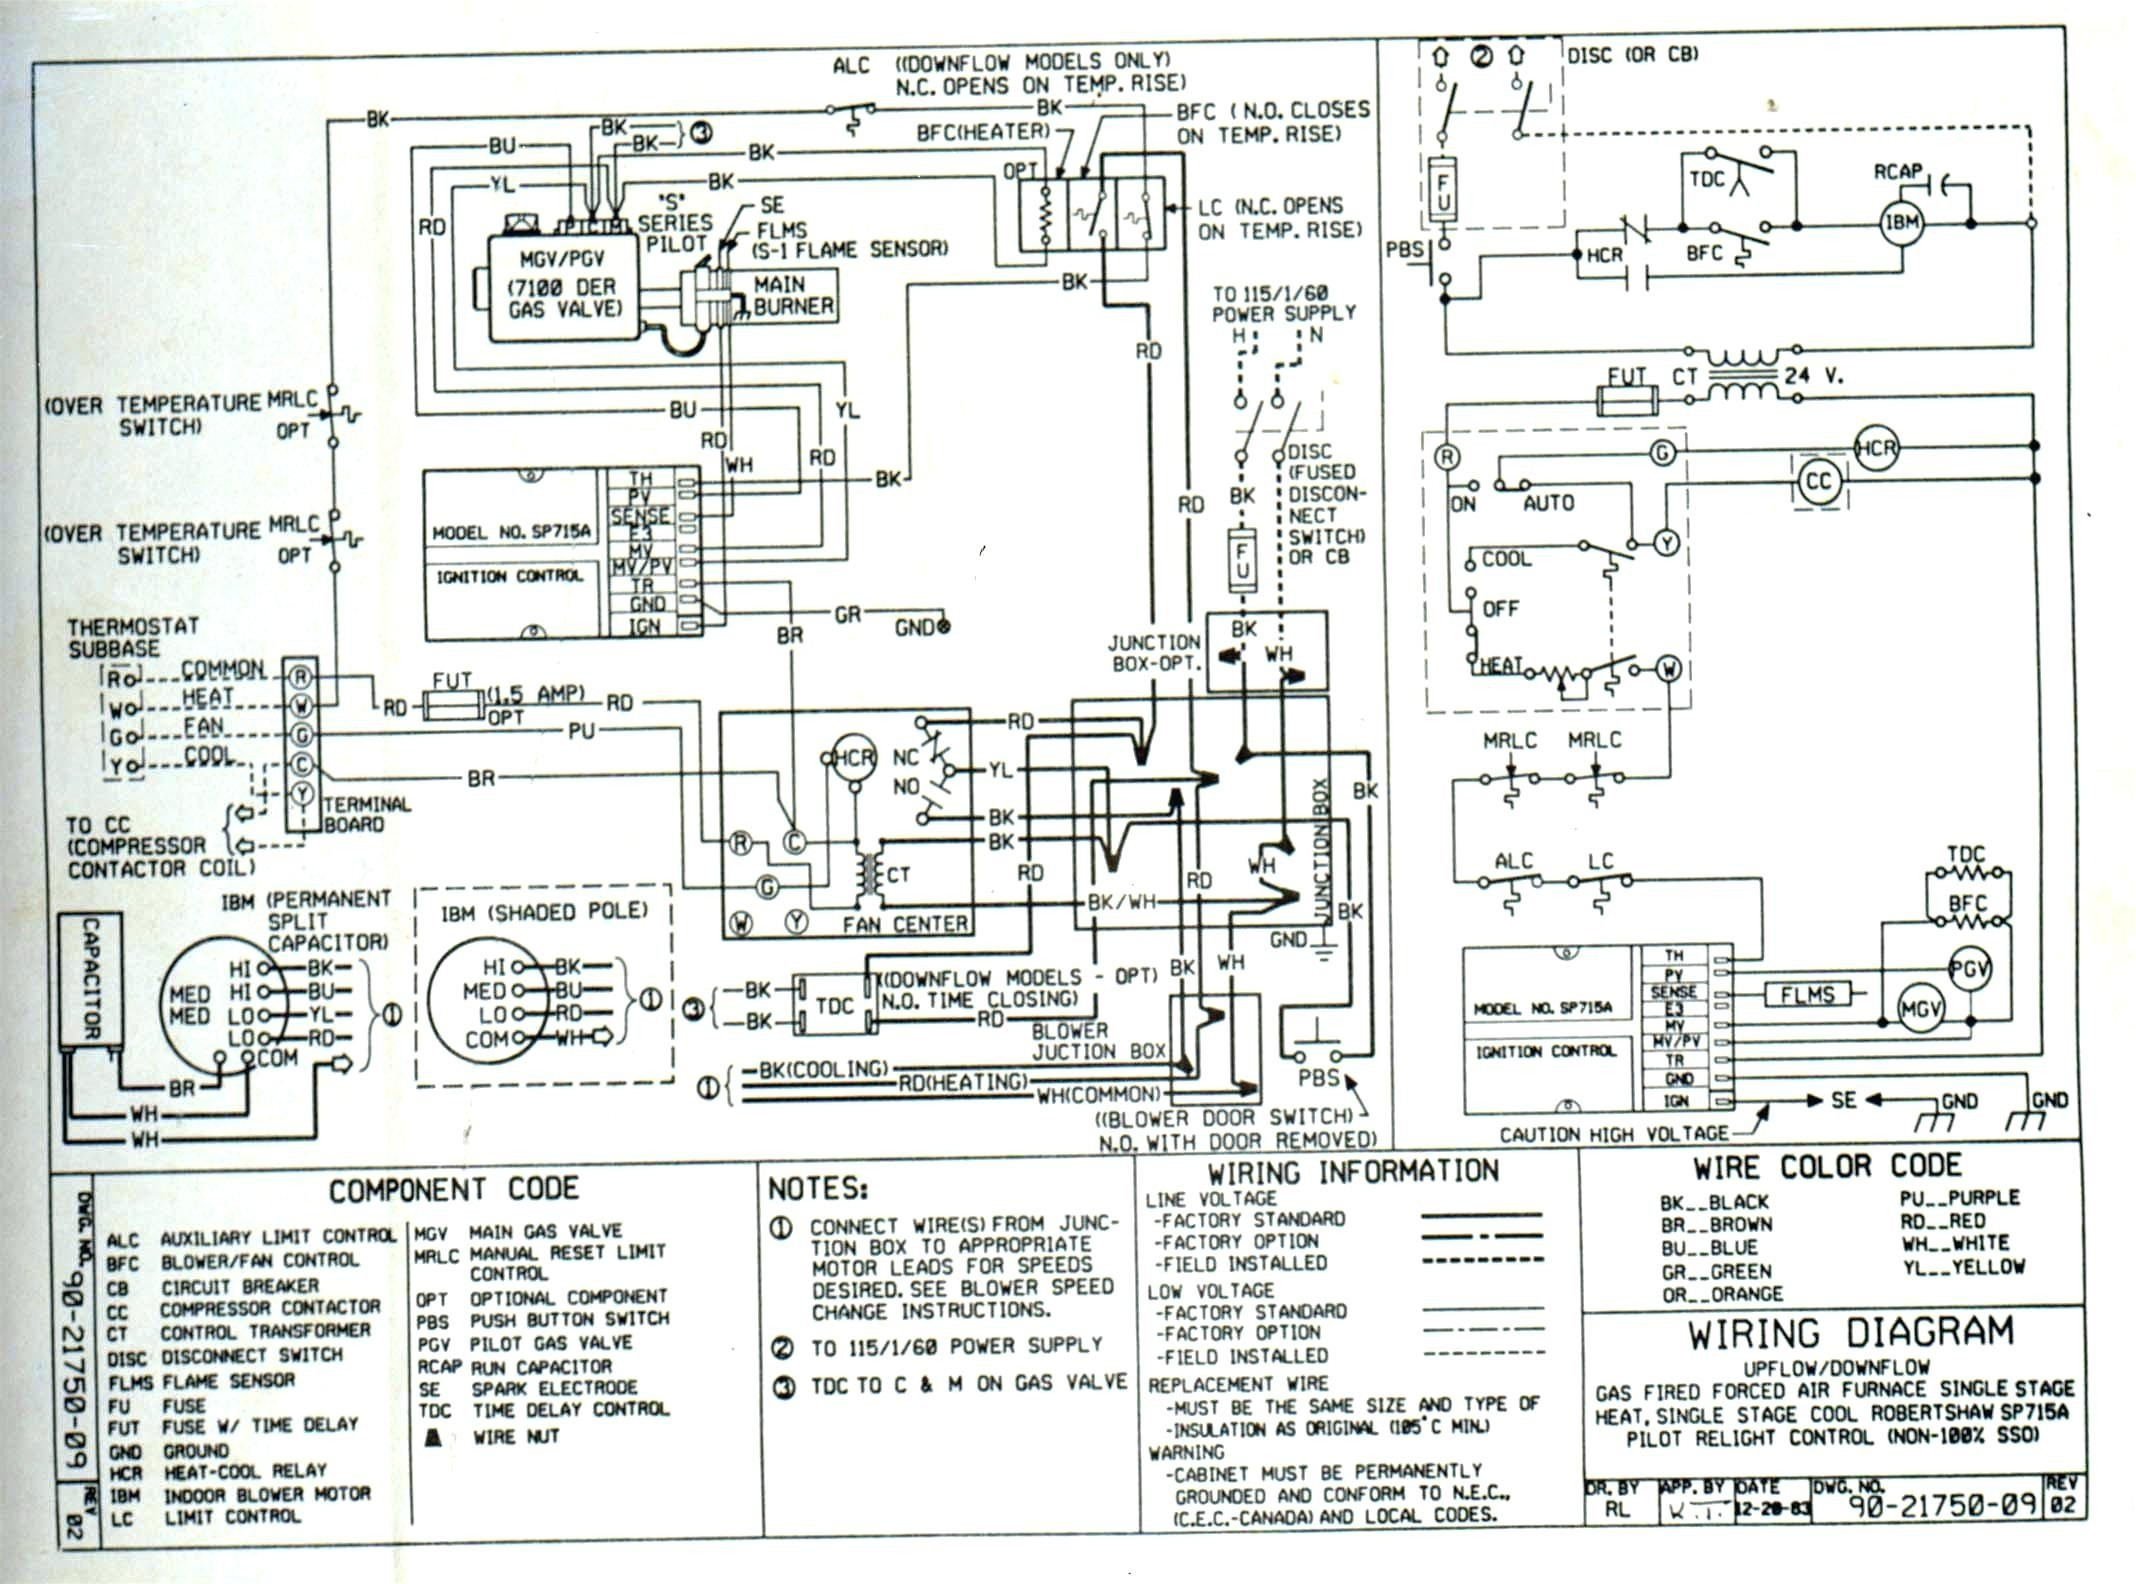 Bard Wiring Diagrams | Wiring Diagram | Article Review on emerson motors wiring diagrams, amana wiring diagrams, burnham boiler wiring diagrams, asco wiring diagrams,